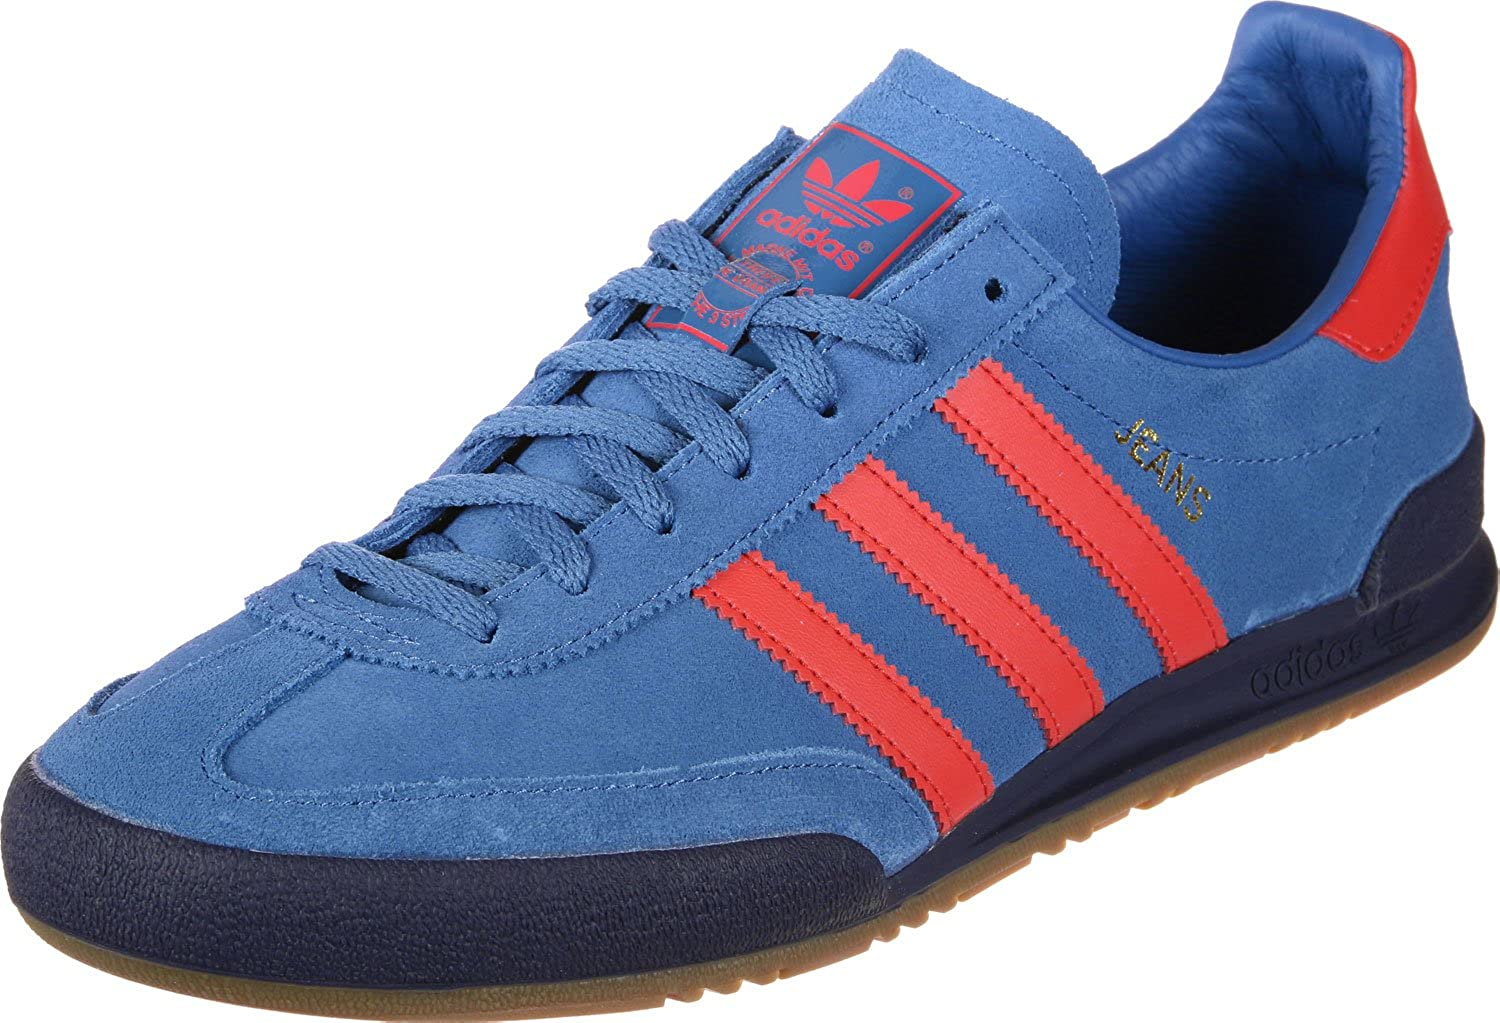 adidas Jeans, Chaussures de Fitness Homme : adidas Neo: Amazon.fr ...